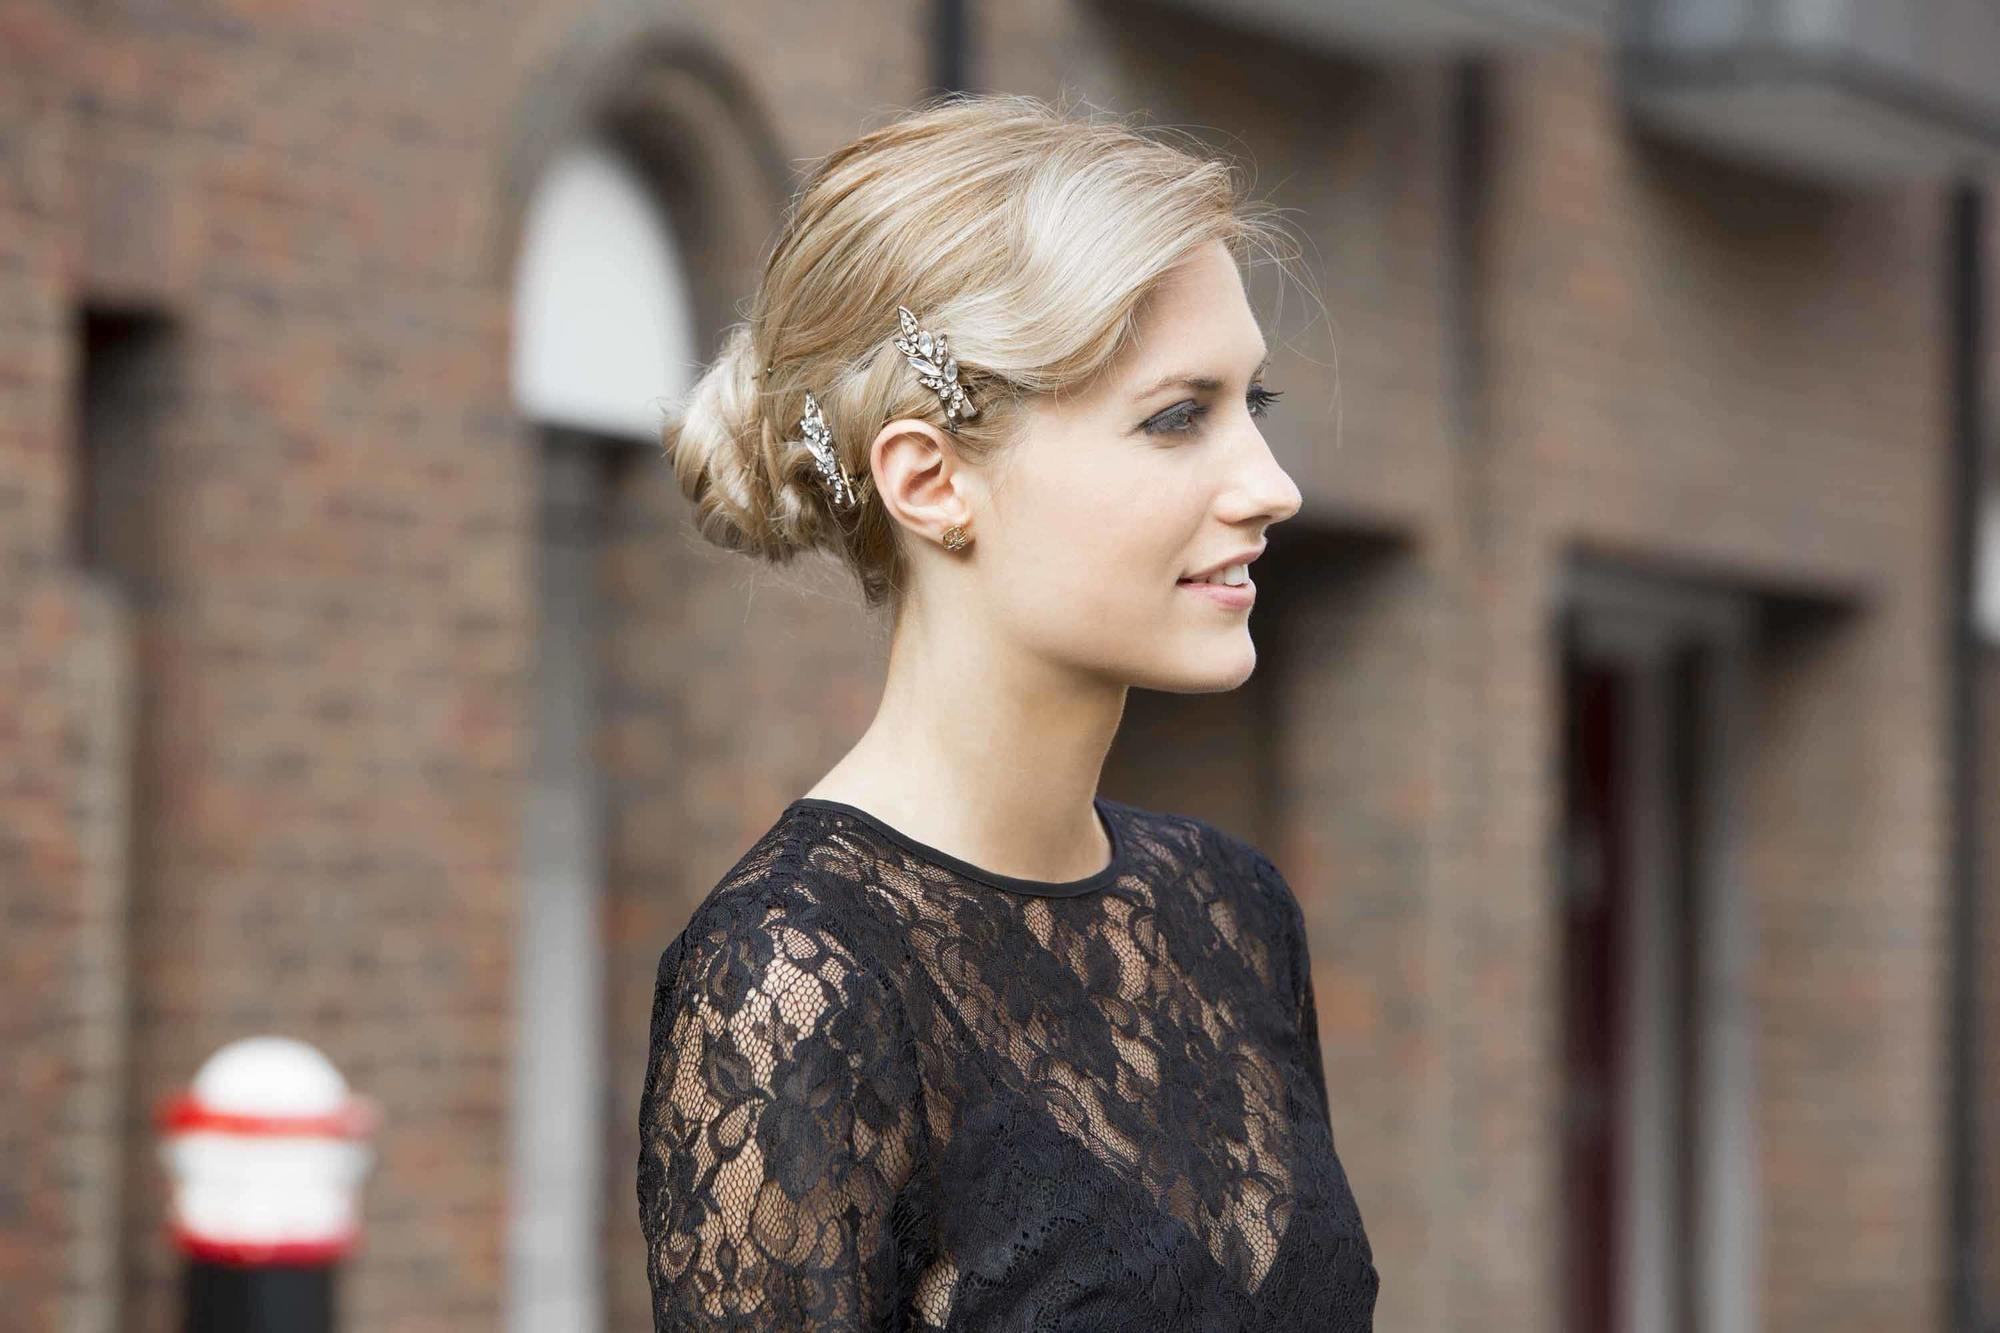 Long Hair Updo Styles: Updo Hairstyles For Long Hair: Video And Inspiring